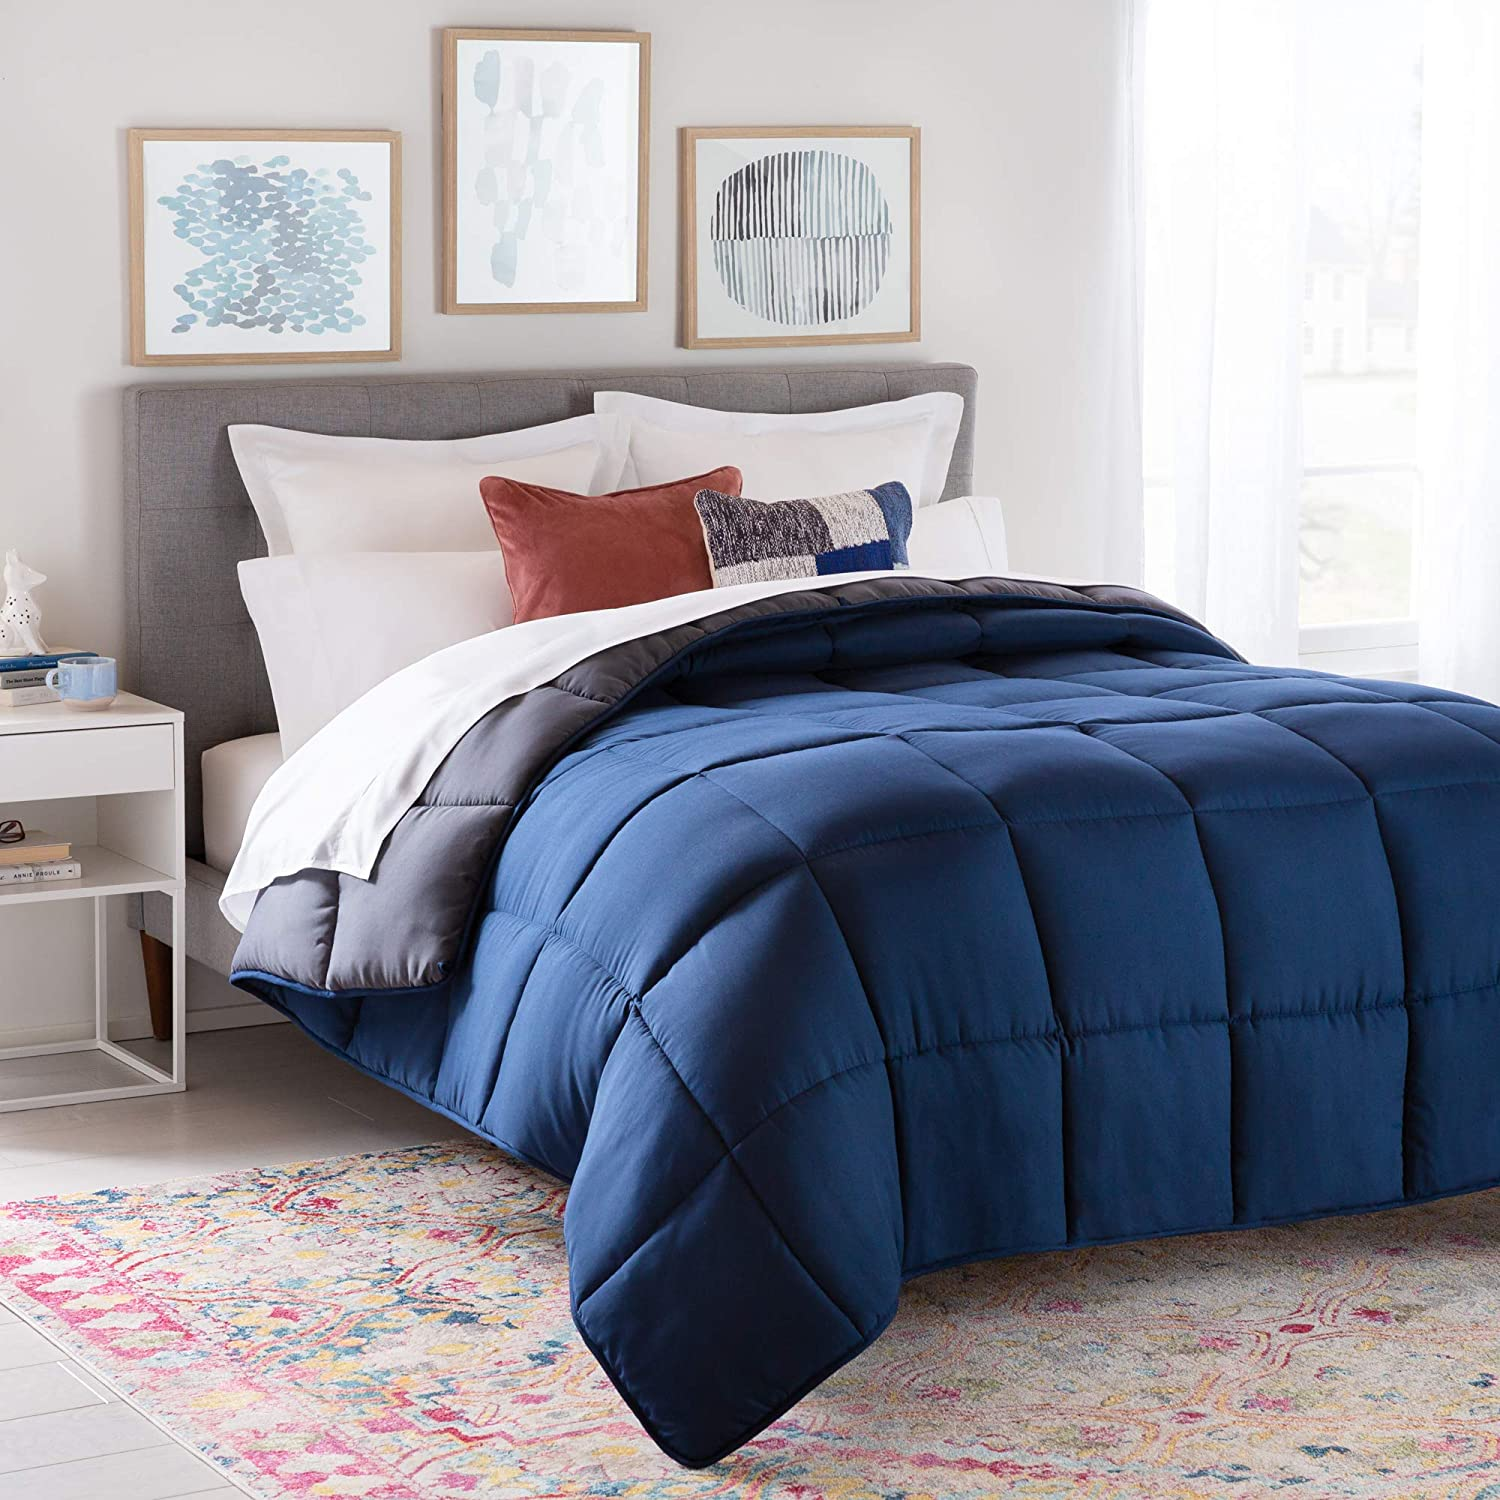 Linenspa All-Season Reversible Down Alternative Quilted Comforter - Hypoallergenic - Plush Microfiber Fill - Machine Washable - Duvet Insert or Stand-Alone Comforter - Navy/Graphite - Queen: Home & Kitchen